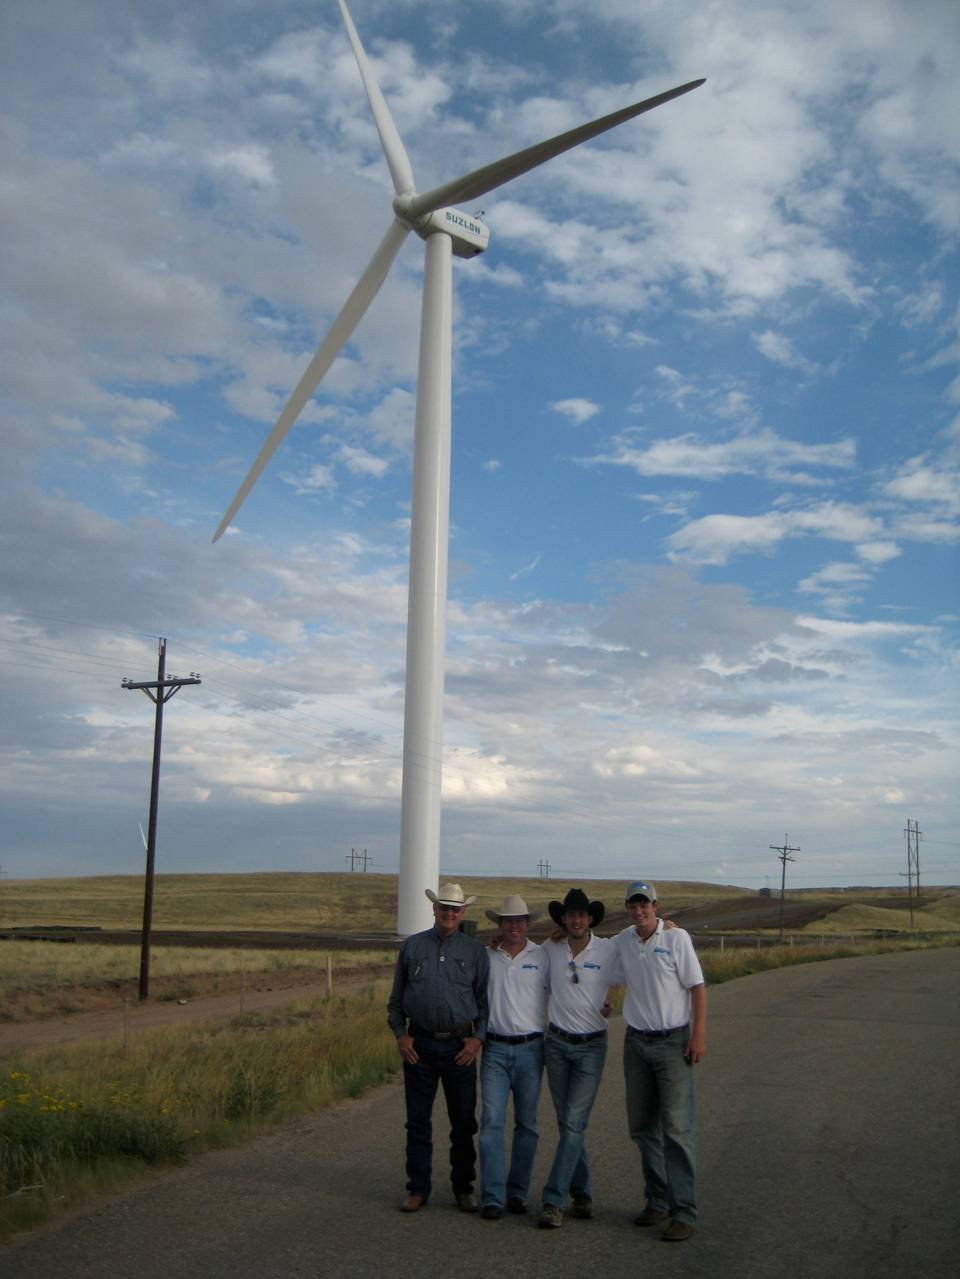 Nate Sandvig (2nd from left) and his project team at a windfarm site. Courtesy of Sandvig.